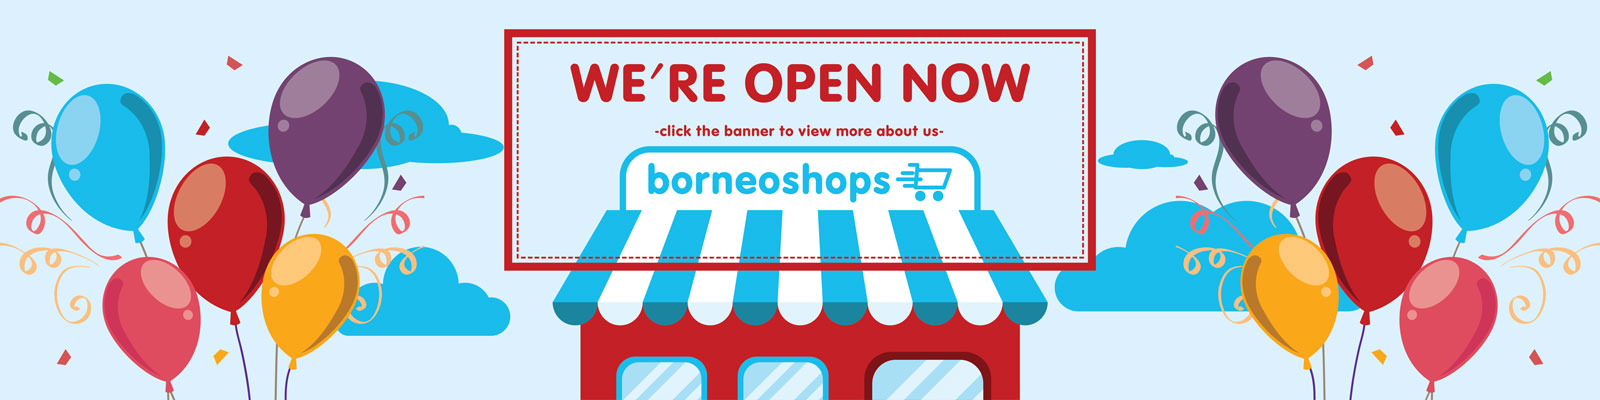 borneoshops.com - We're Open Now